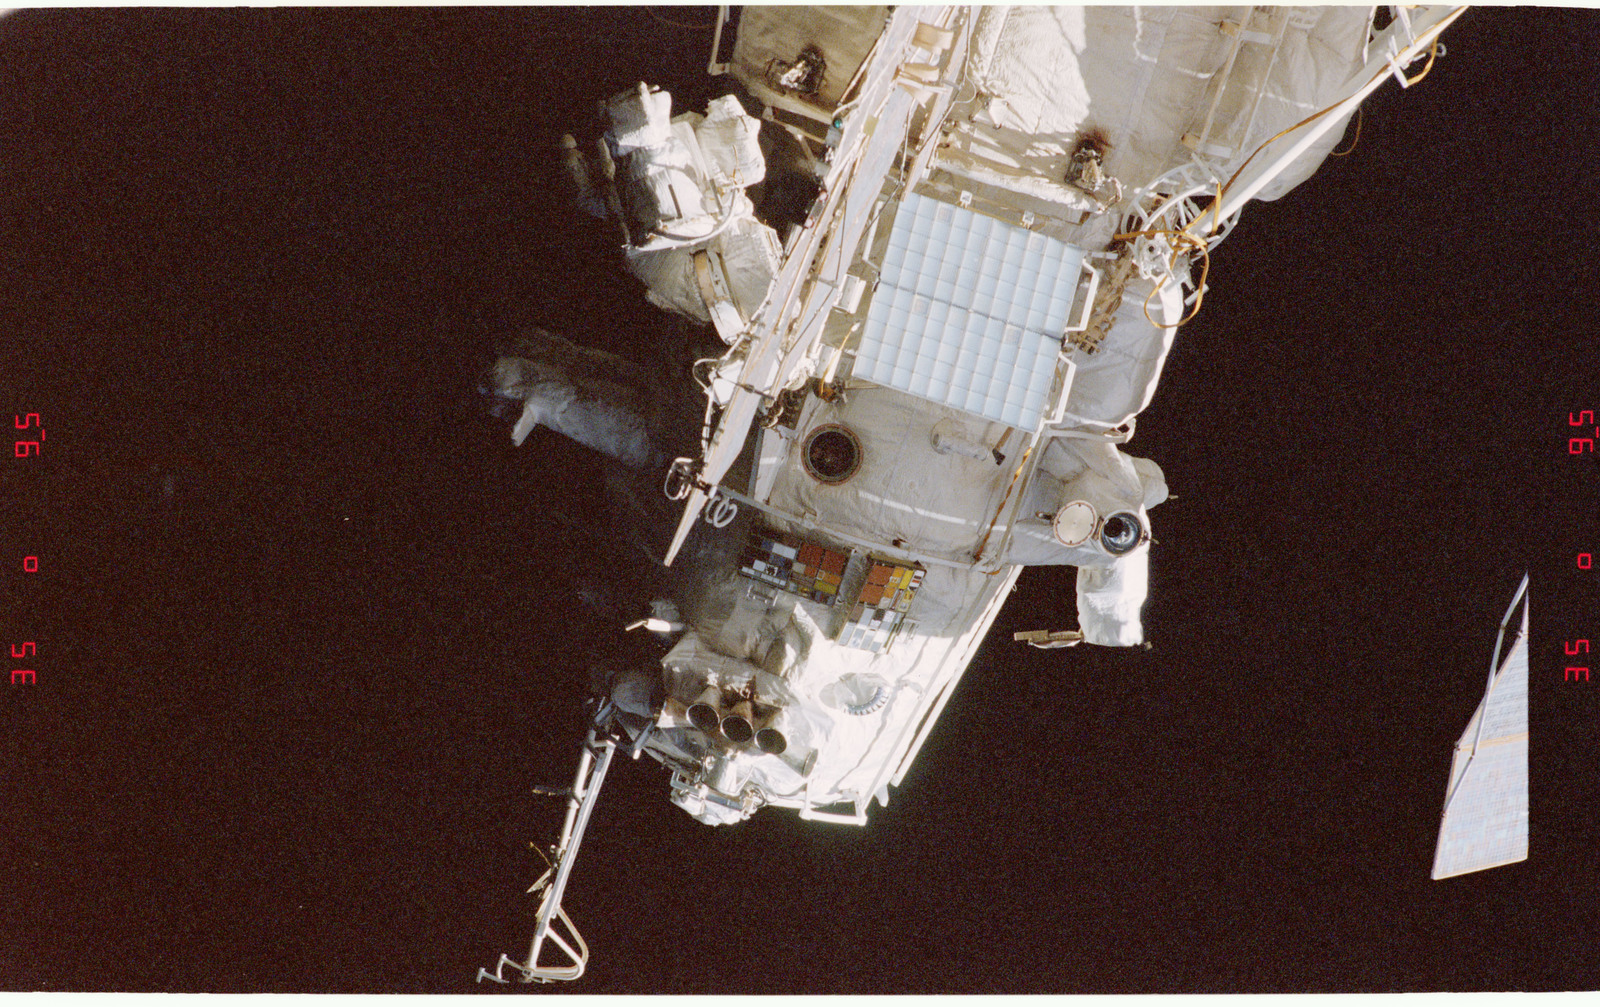 Sts081 367 001 Sts 081 Survey Views Of The Mir Space Station